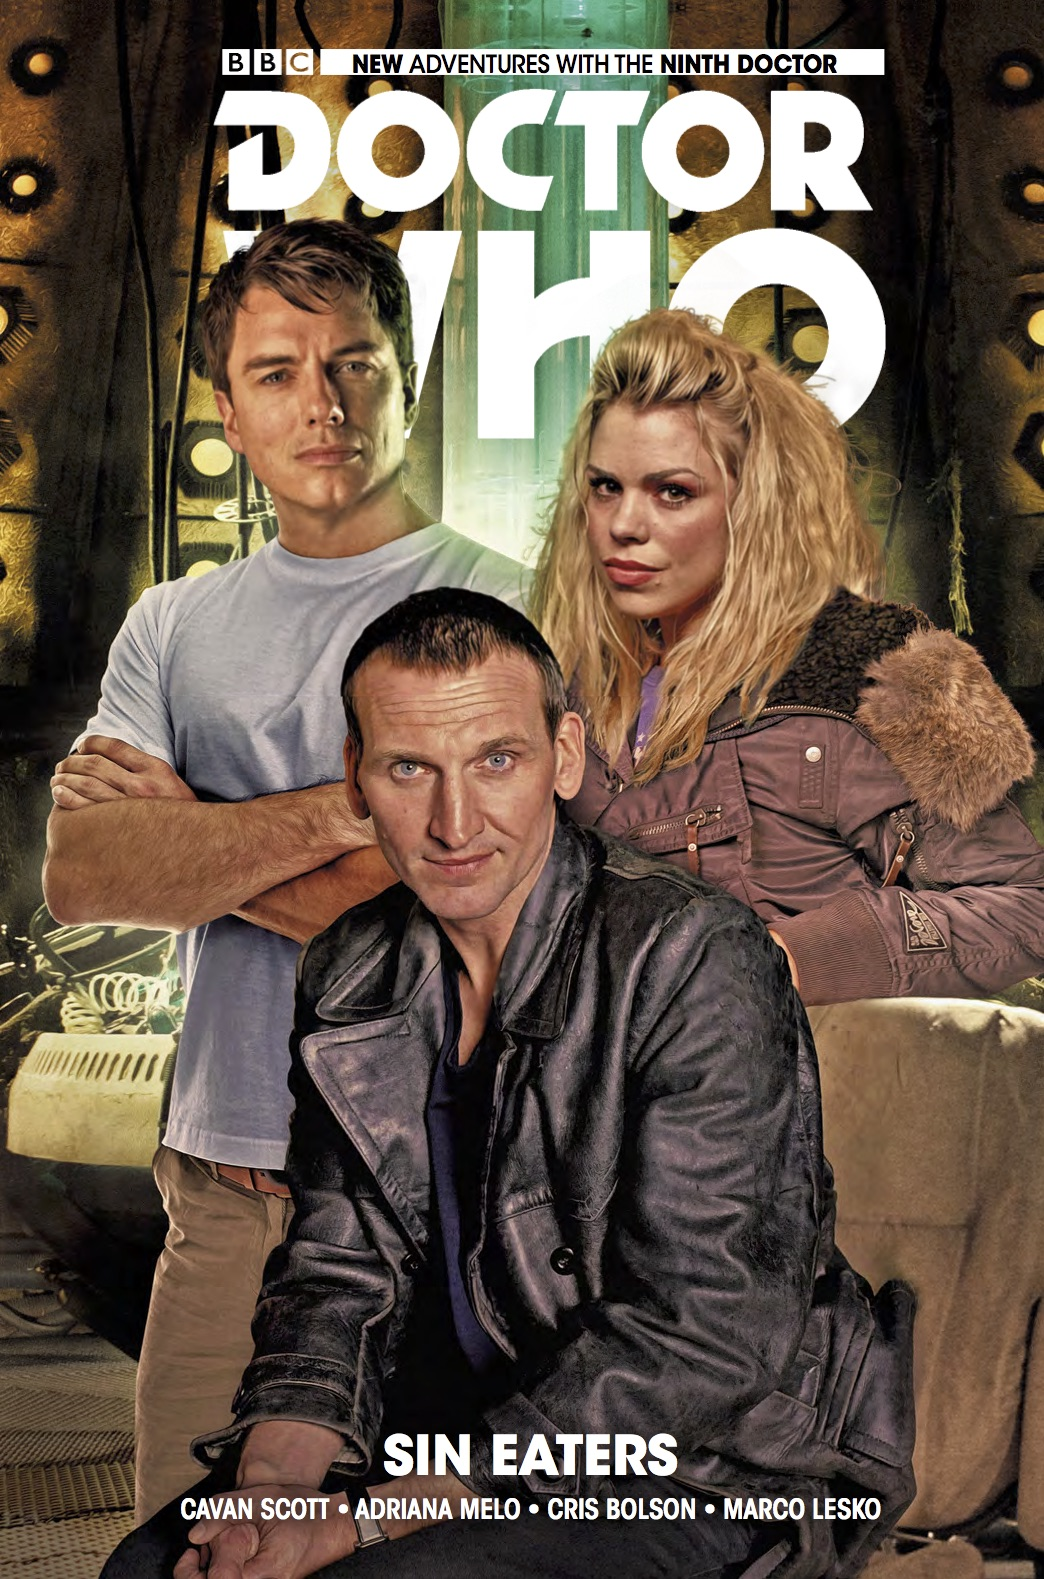 The latest collection of Titan's Doctor Who: The Ninth Doctor stories, available now